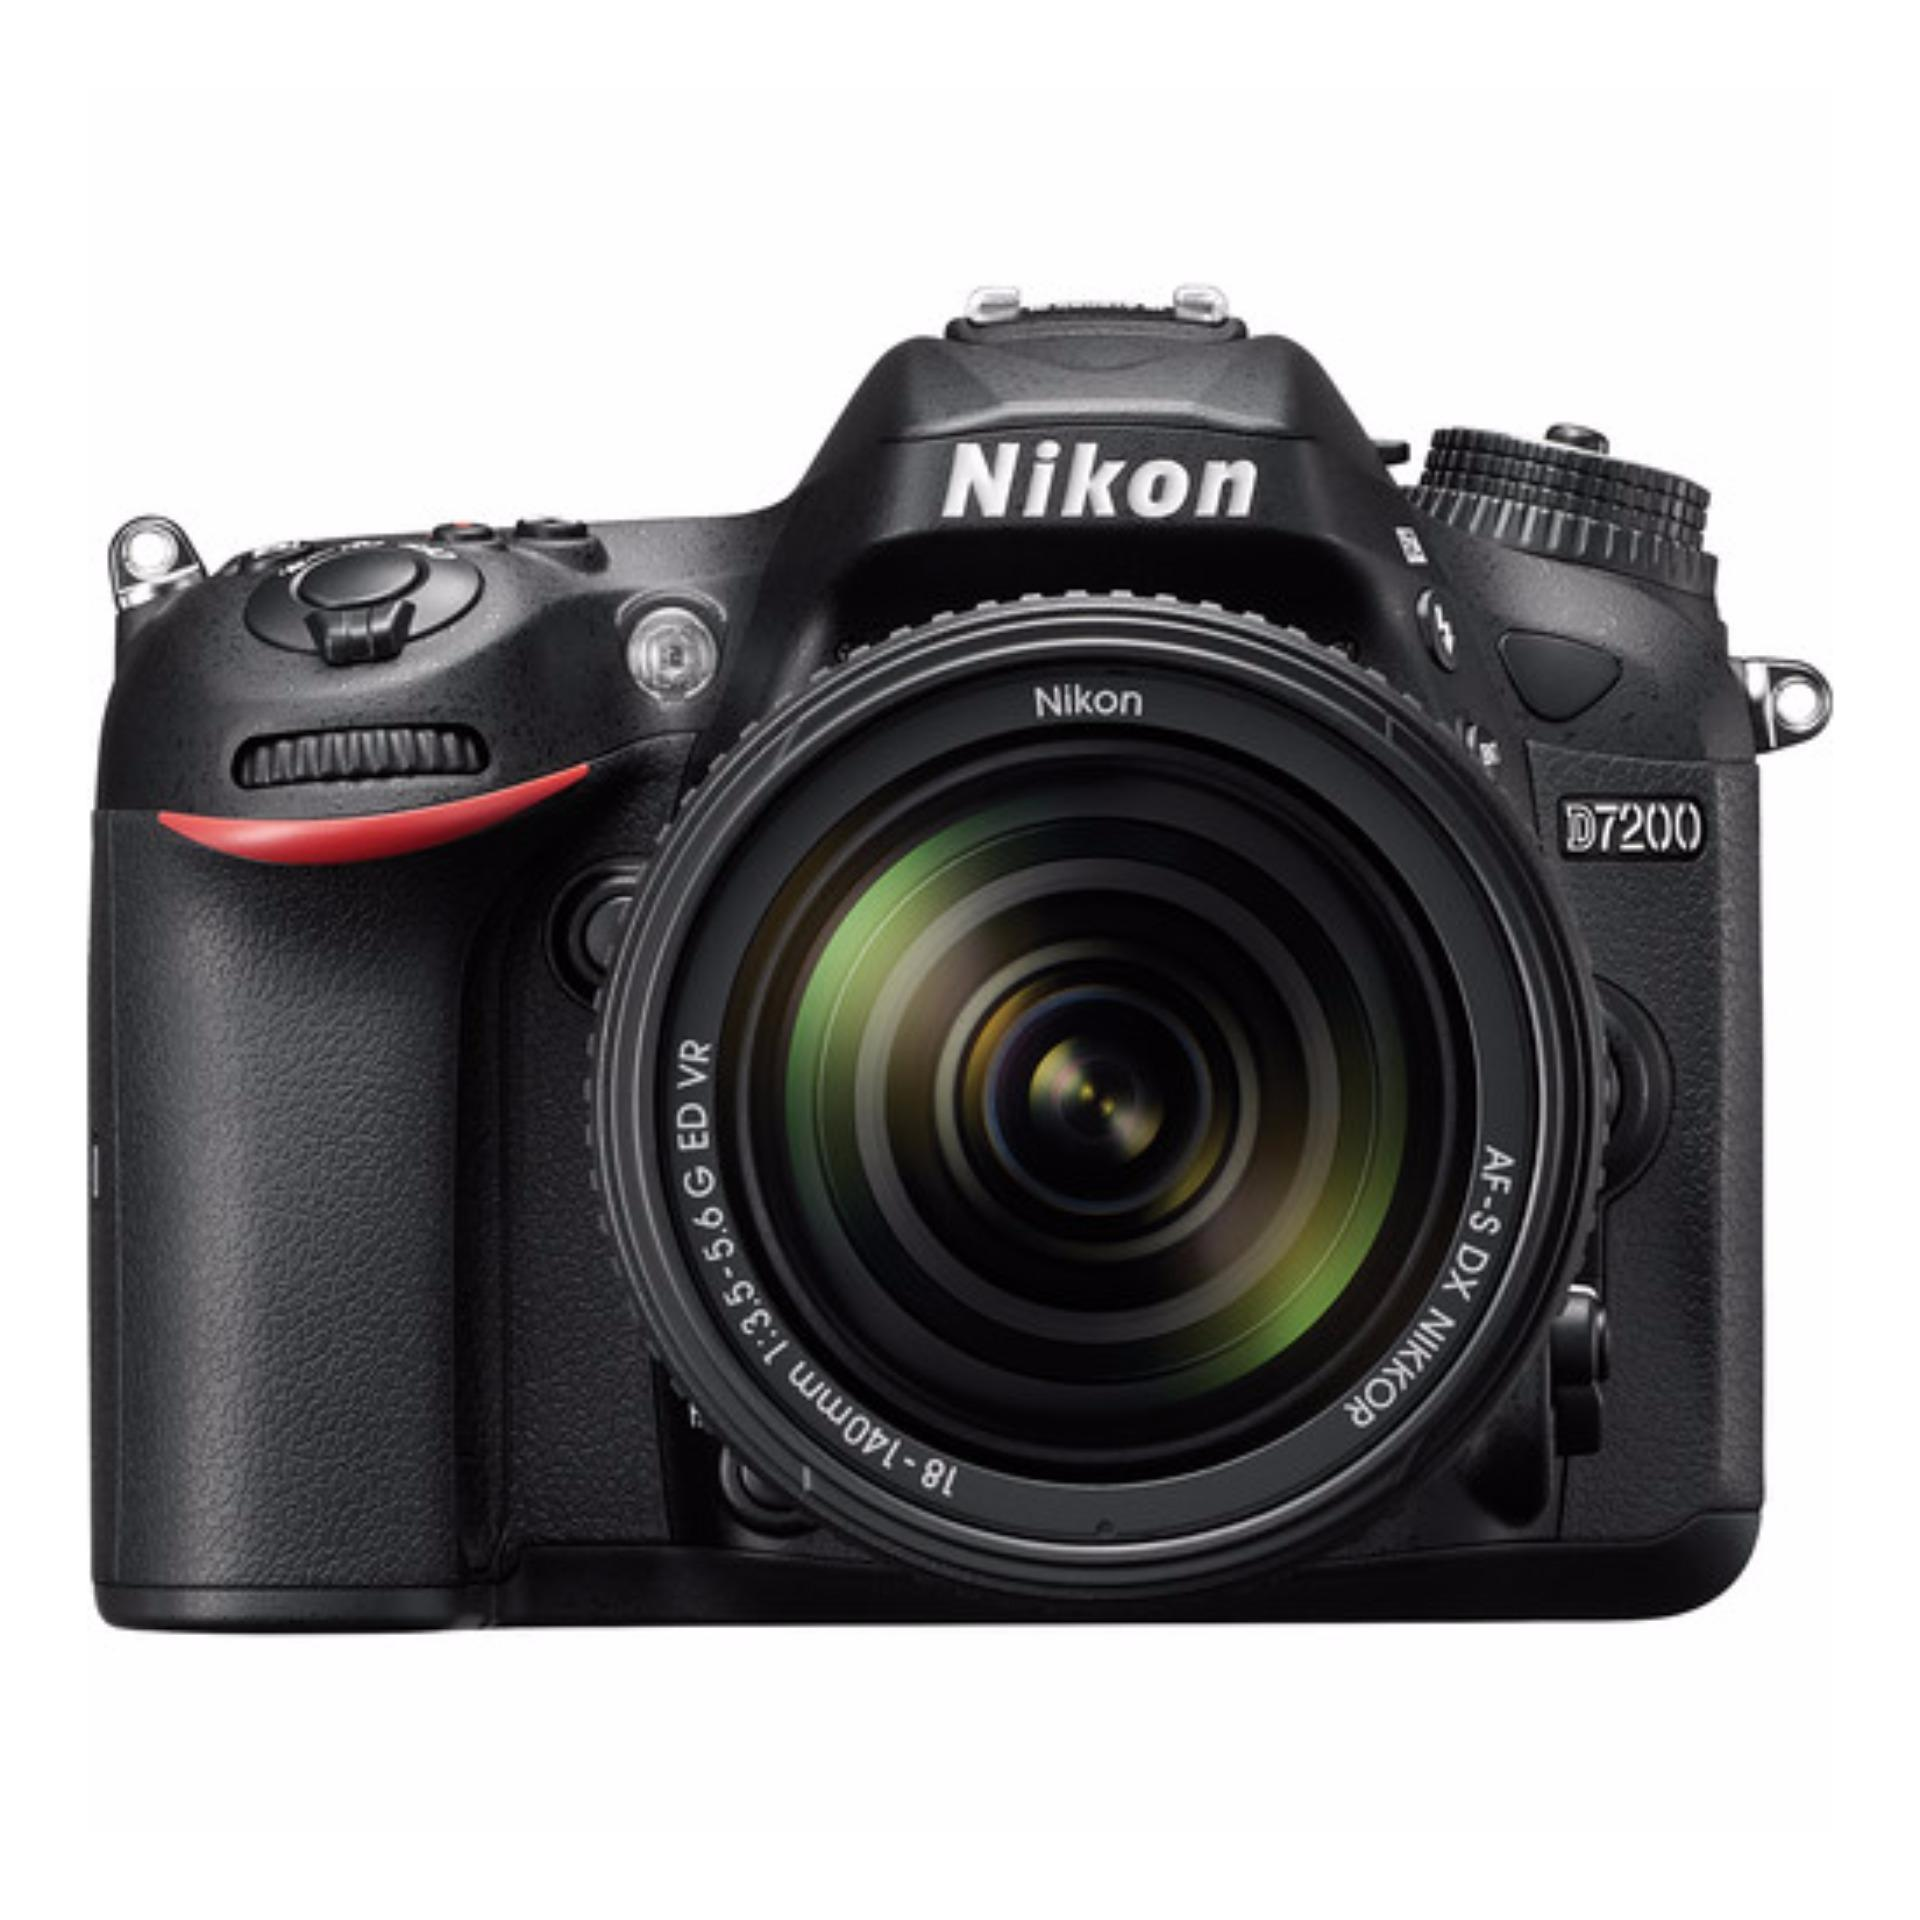 Nikon D7200 DSLR Camera with 18-140mm Lens export only